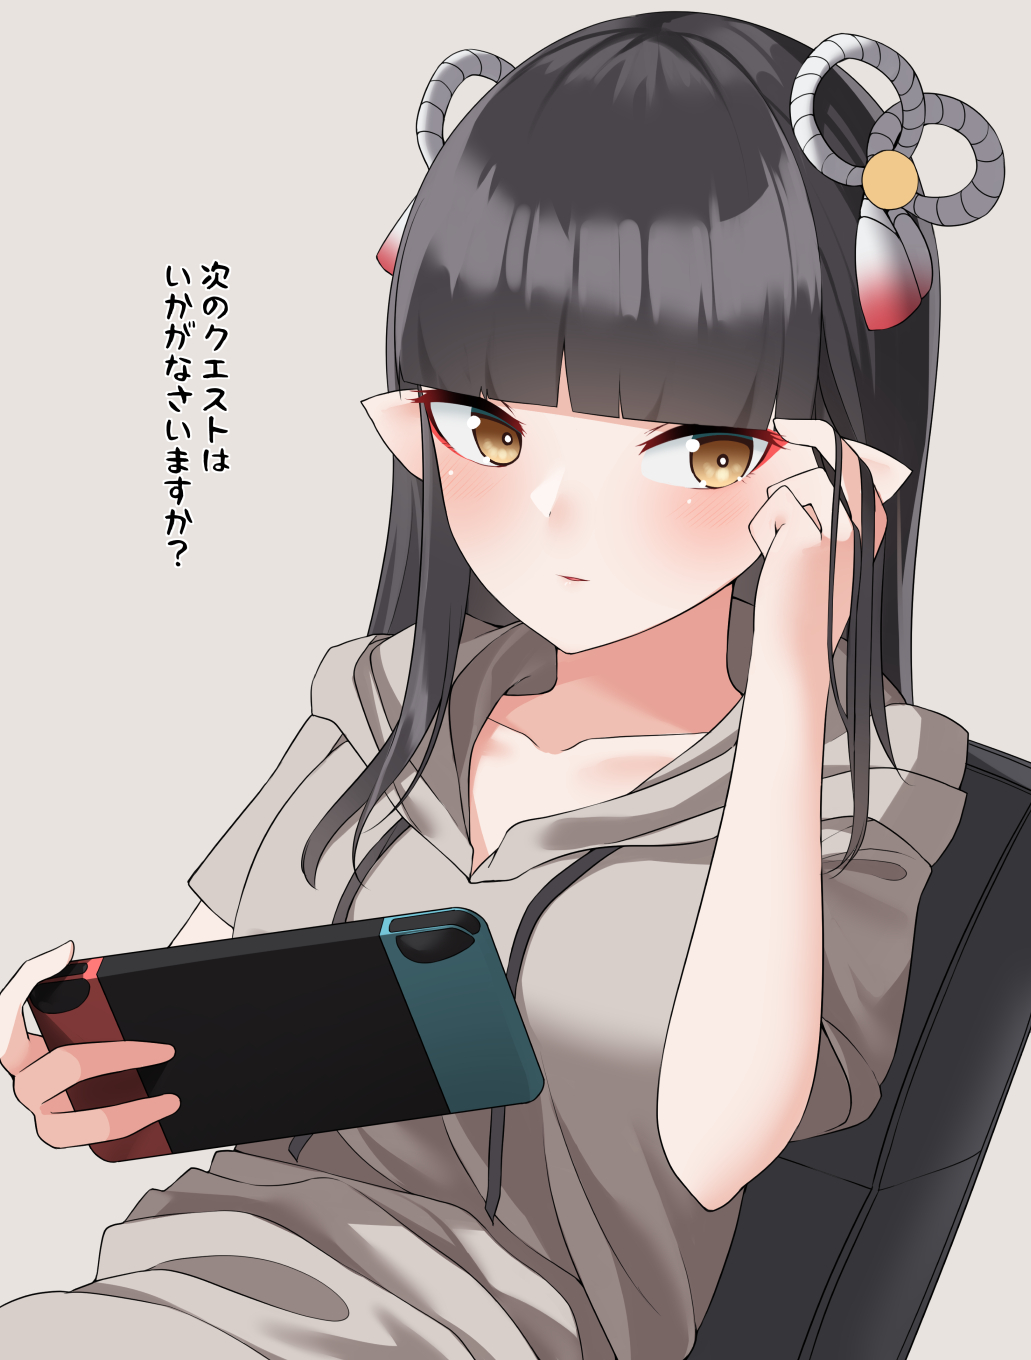 1girl bangs black_hair blunt_bangs blush controller eyebrows_visible_through_hair fewer_digits game_console game_controller hair_ornament handheld_game_console highres holding holding_handheld_game_console joy-con long_hair looking_at_viewer menbou_(menbow3v) minoto monster_hunter_(series) monster_hunter_rise nintendo nintendo_switch playing_games pointy_ears solo sweater yellow_eyes